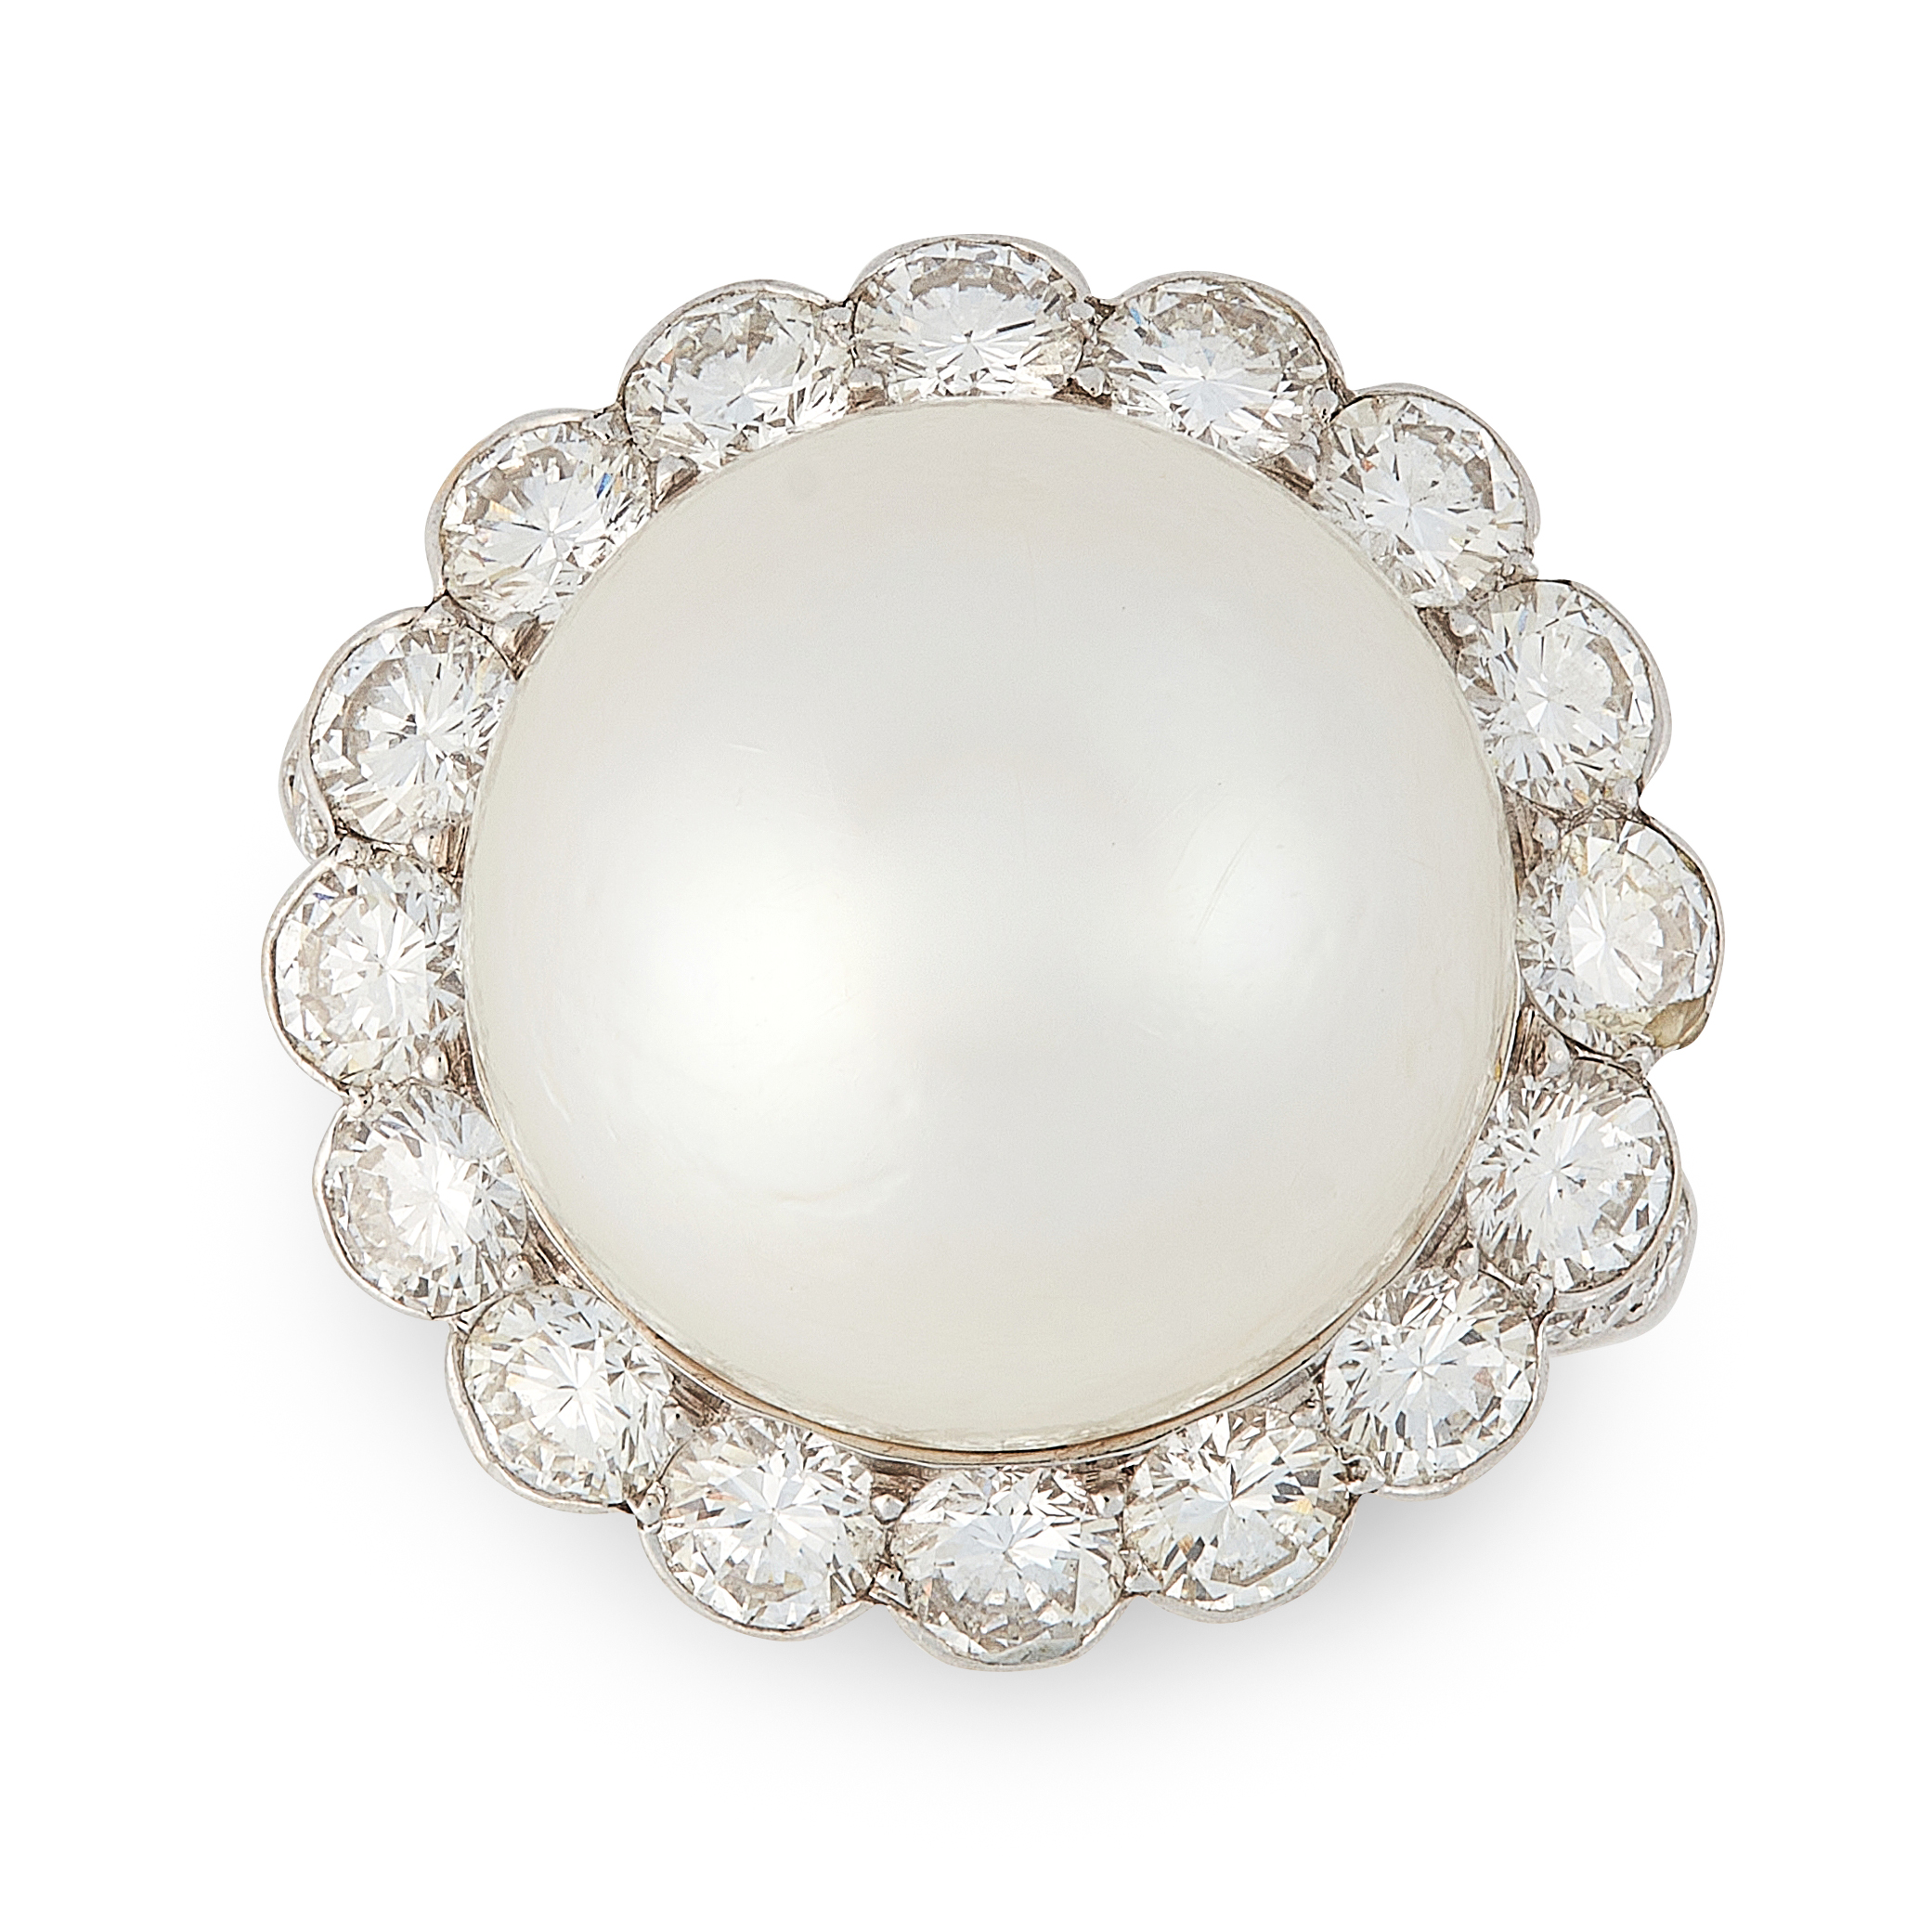 A VINTAGE CULTURED PEARL AND DIAMOND RING, VAN CLEEF & ARPELS in 18ct white gold, set with a large